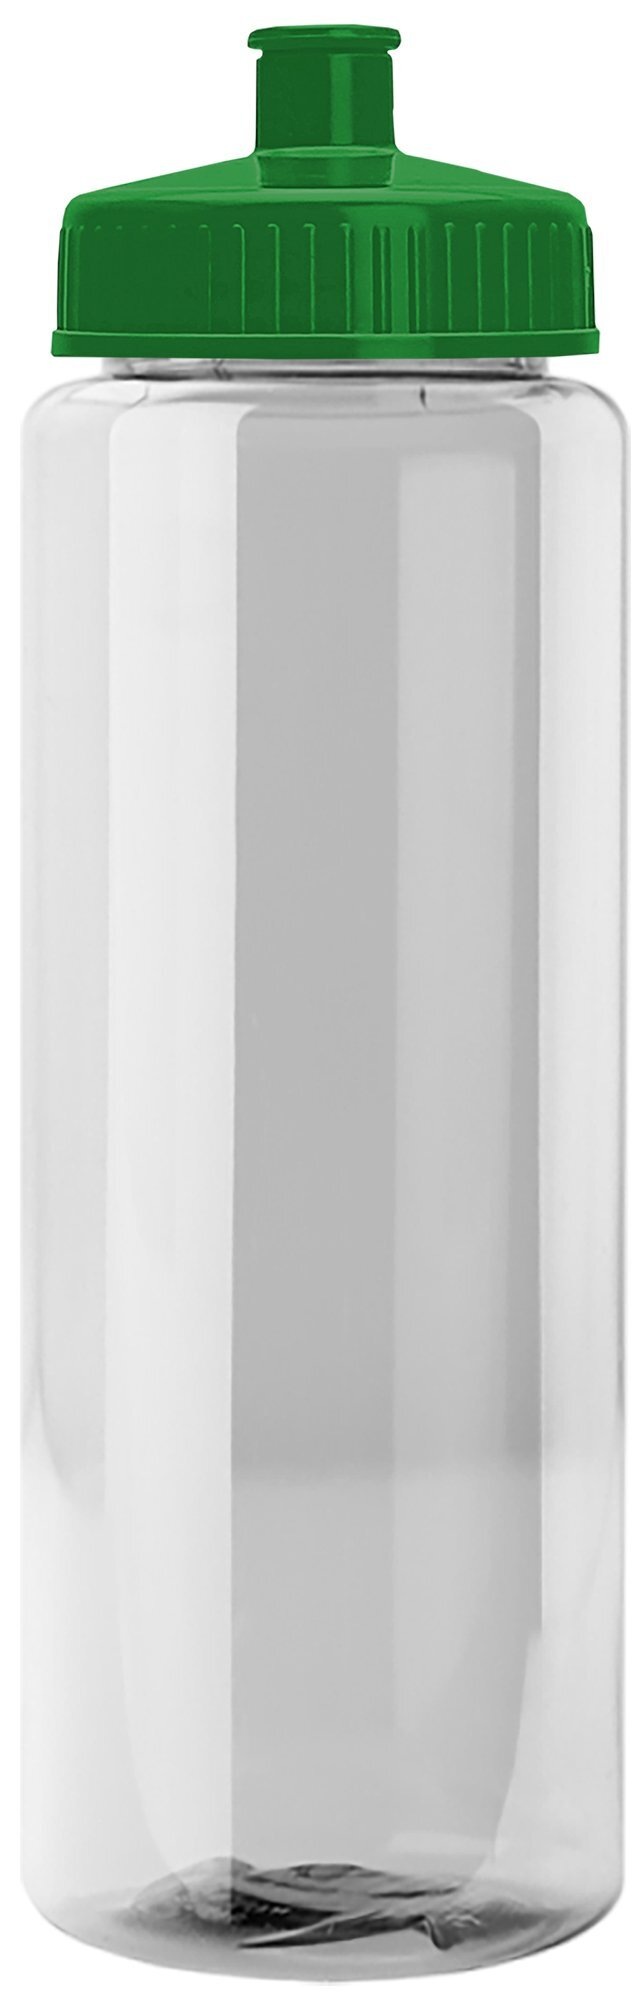 Guzzler Transparent Sport Bottle, 32oz. - Push/Pull Lid